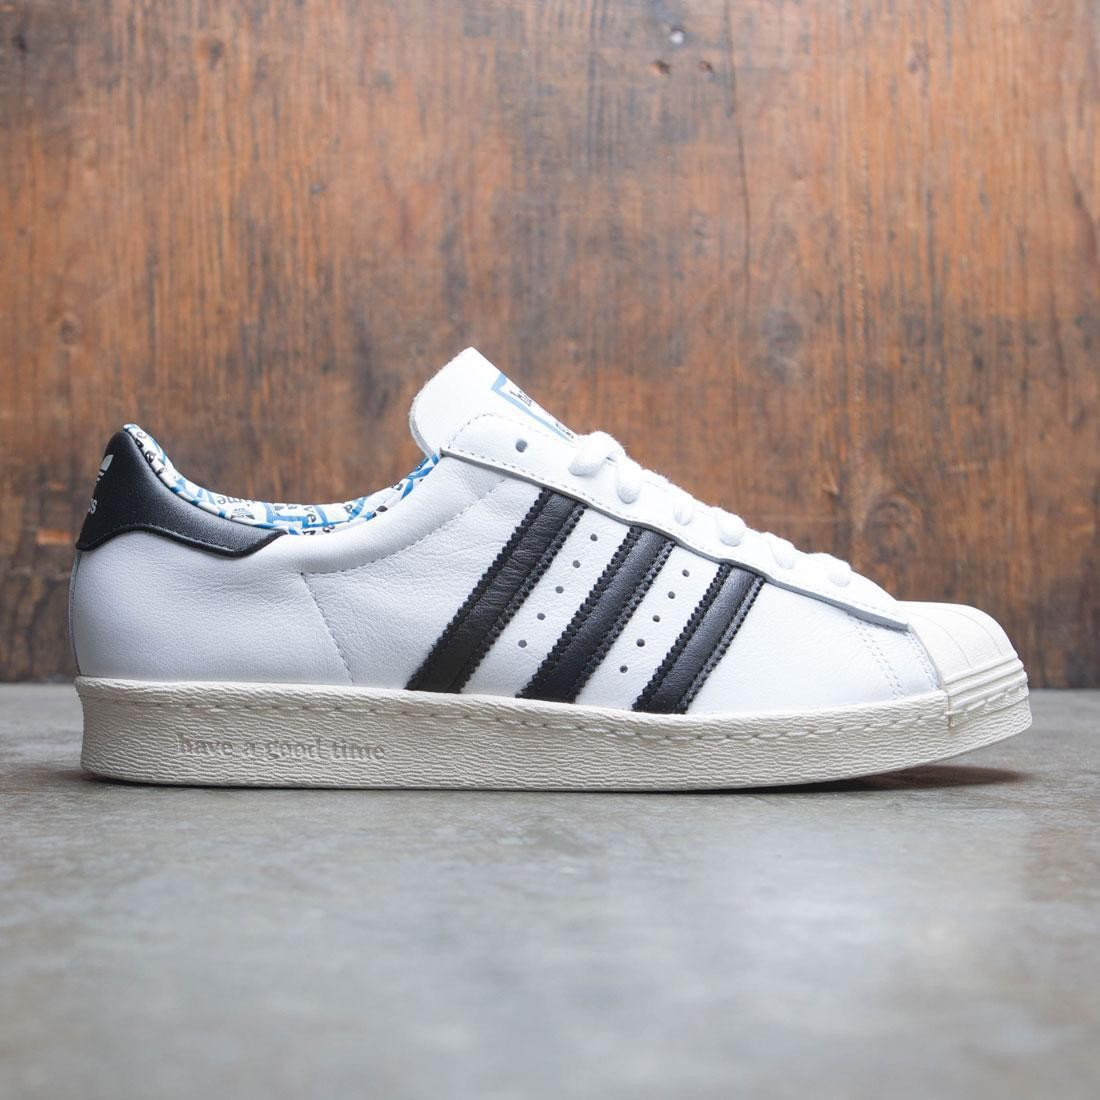 d5680c99dad2 Adidas x Have A Good Time Men Superstar 80s white core black chalk white